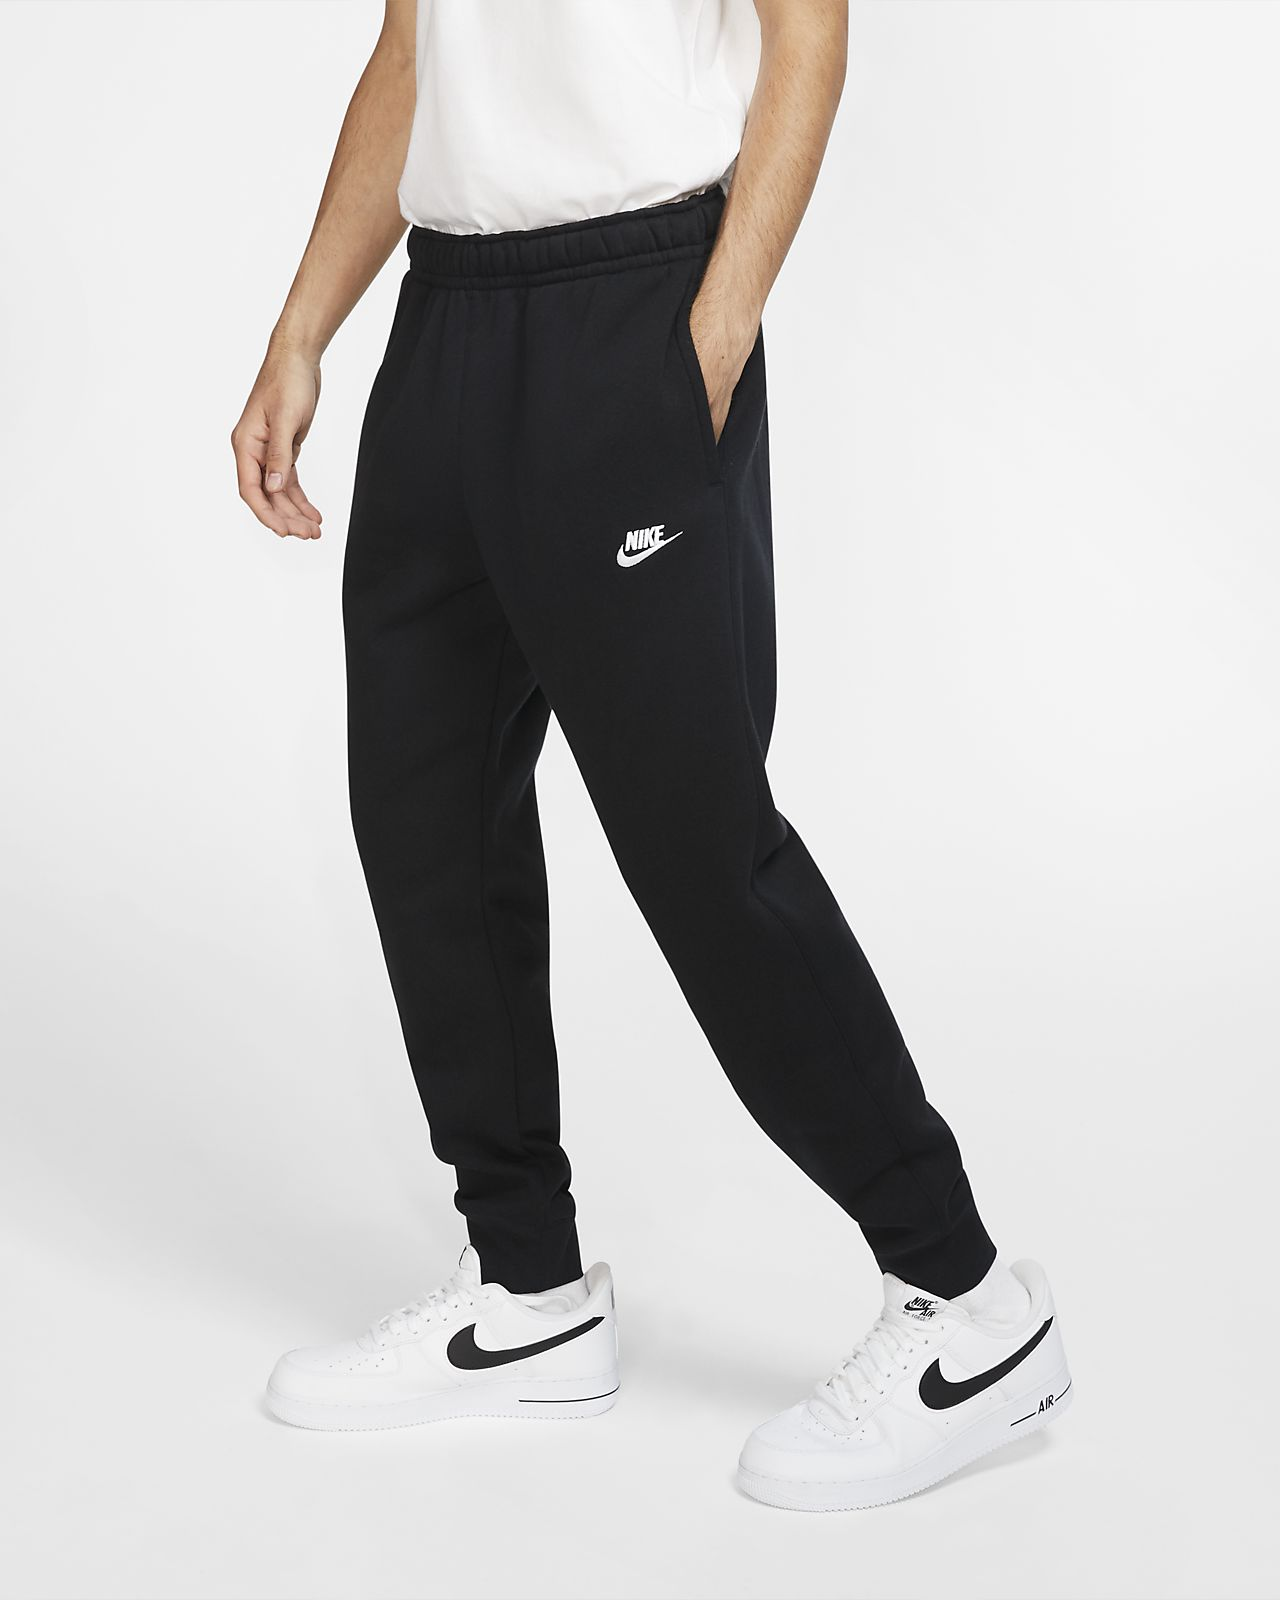 Nike Jogging NAVY BLUE w Silver white STRIPES ACTIVEWEAR r